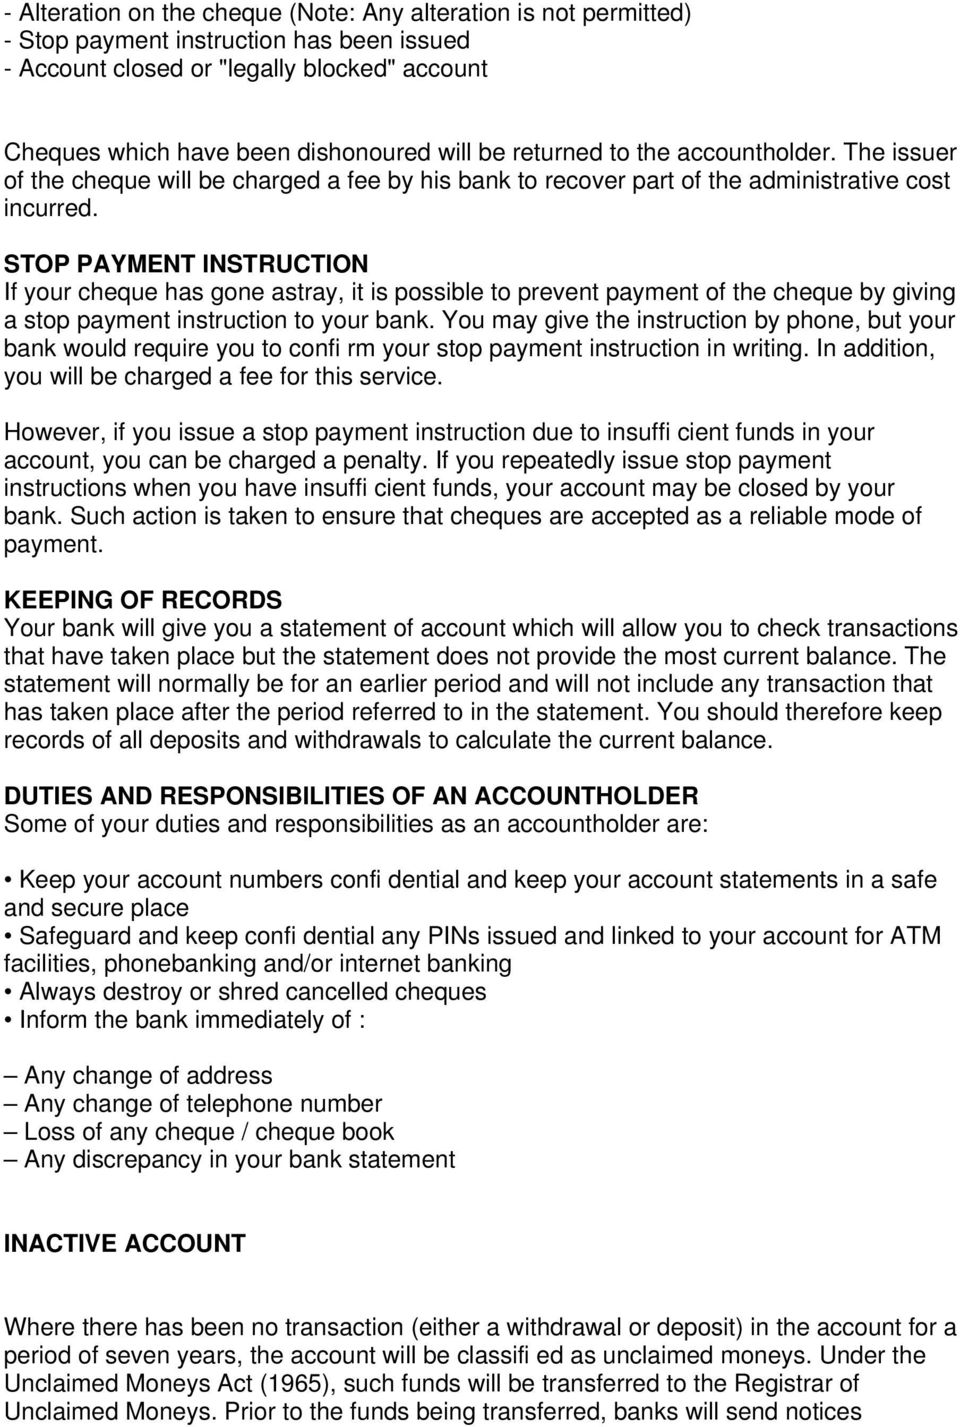 STOP PAYMENT INSTRUCTION If your cheque has gone astray, it is possible to prevent payment of the cheque by giving a stop payment instruction to your bank.